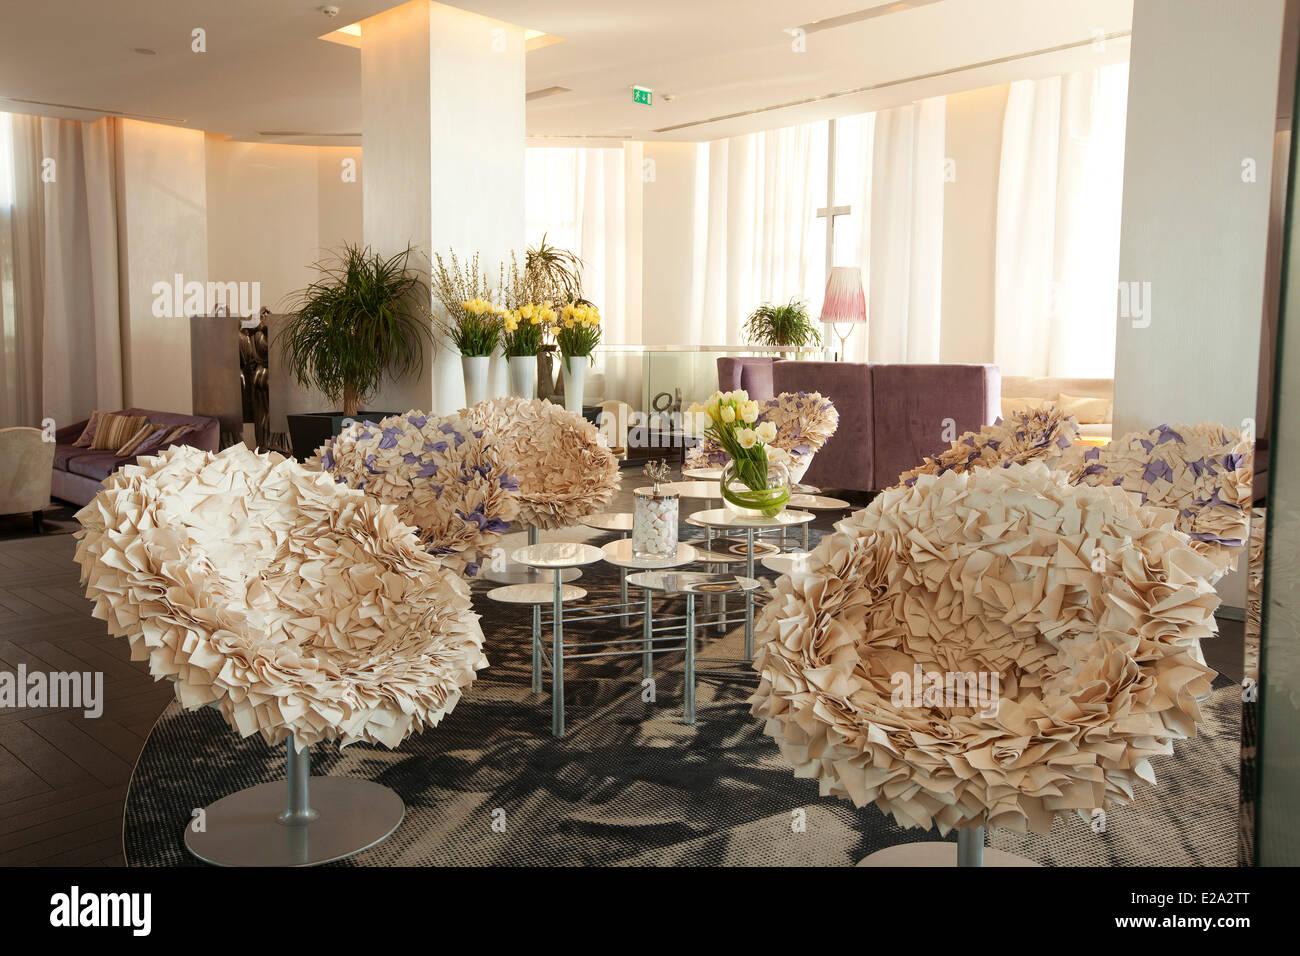 France, Alpes Maritimes, Cannes, Hotel Radisson Blu Stock Photo